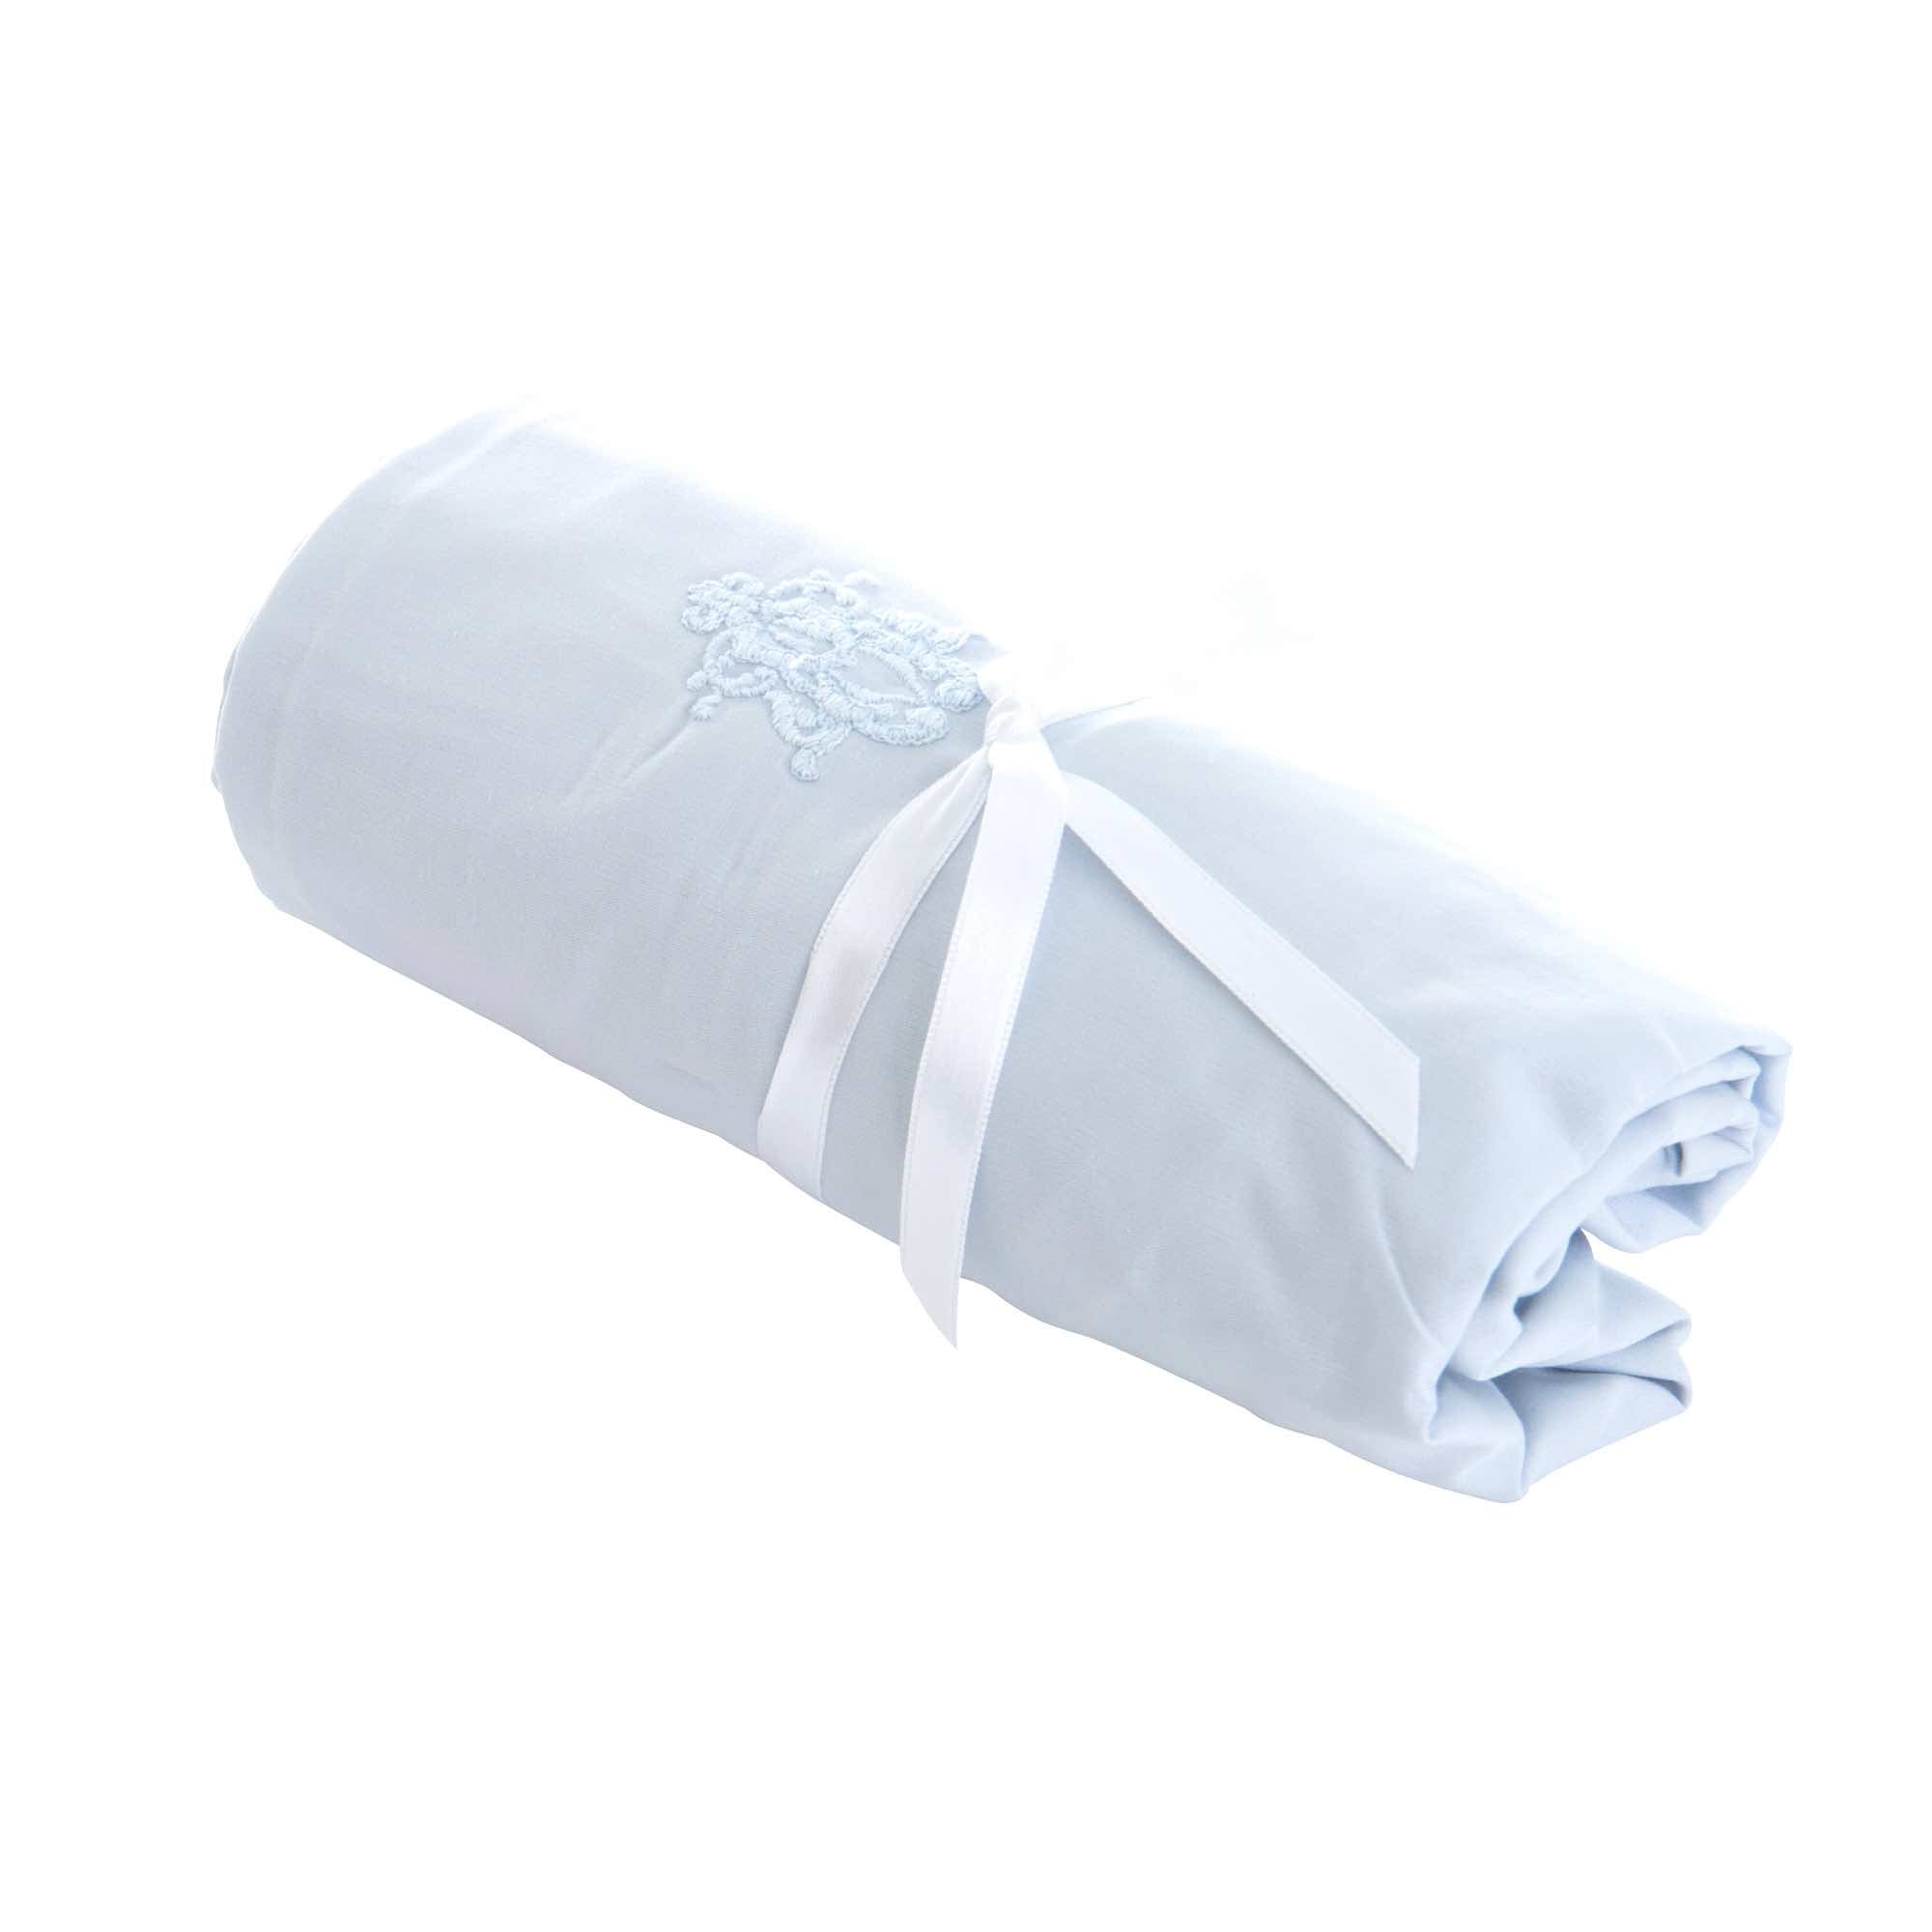 Theophile & Patachou Cradle Fitted Sheet - Royal Blue